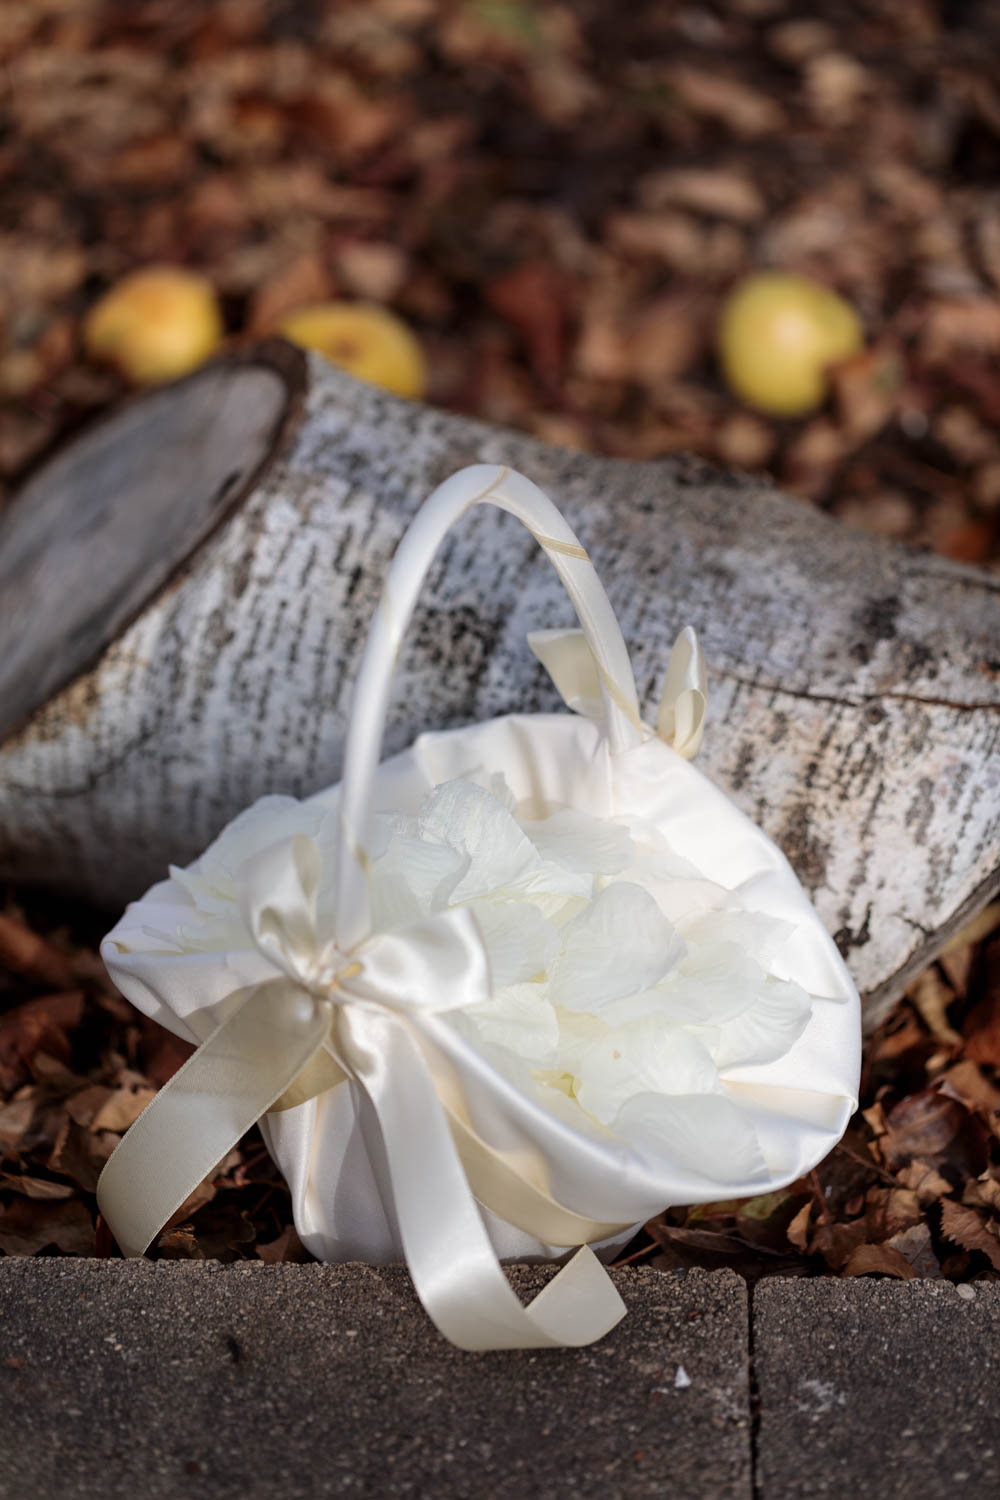 Flower petals in a satin basket